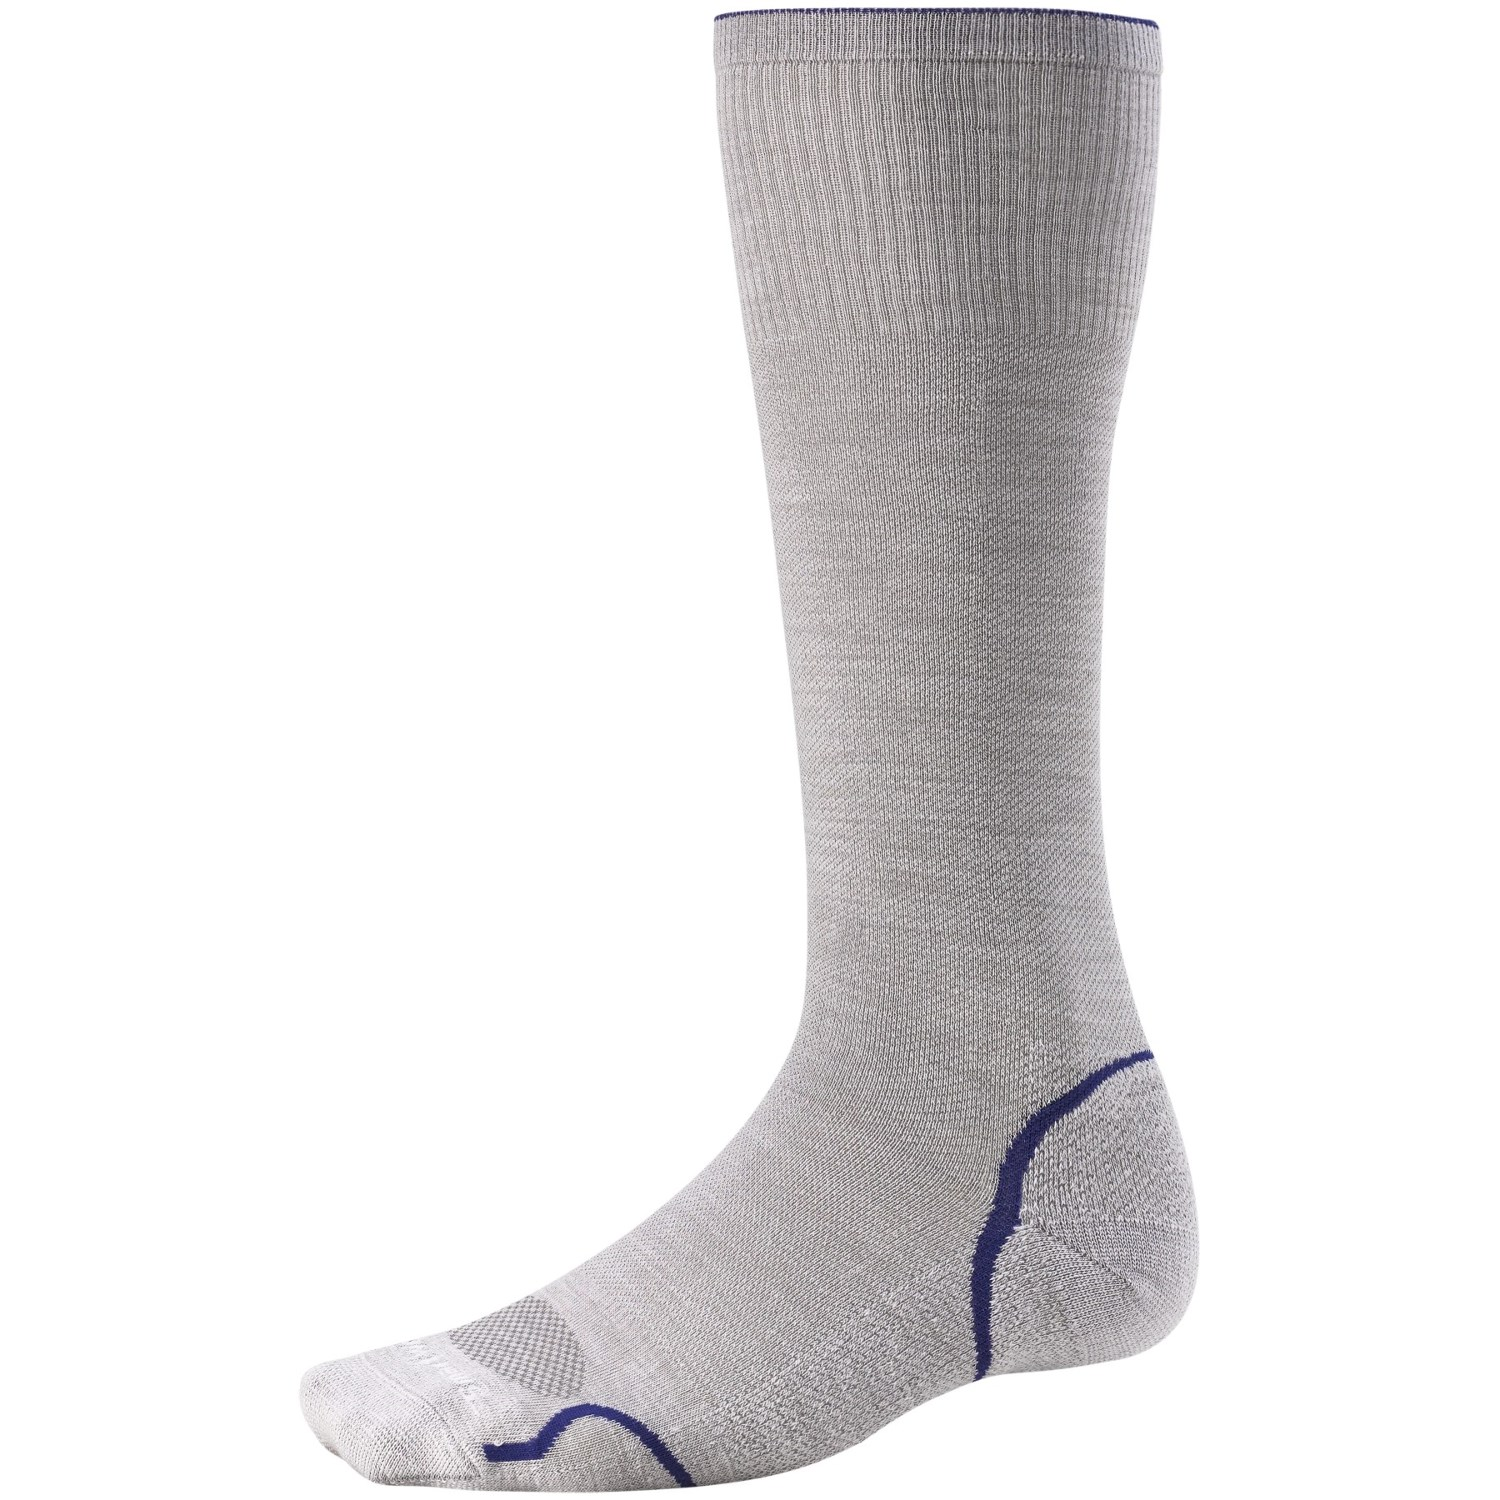 Go from smart to brilliant when you pull on the SmartWool PhD Ski Graduated Compression Ultra Light Sock before your next day on the slopes. New Indestructawool technology allows SmartWool to specially construct these socks with stronger material in high-wear zones for unbeatable durability/5(10).